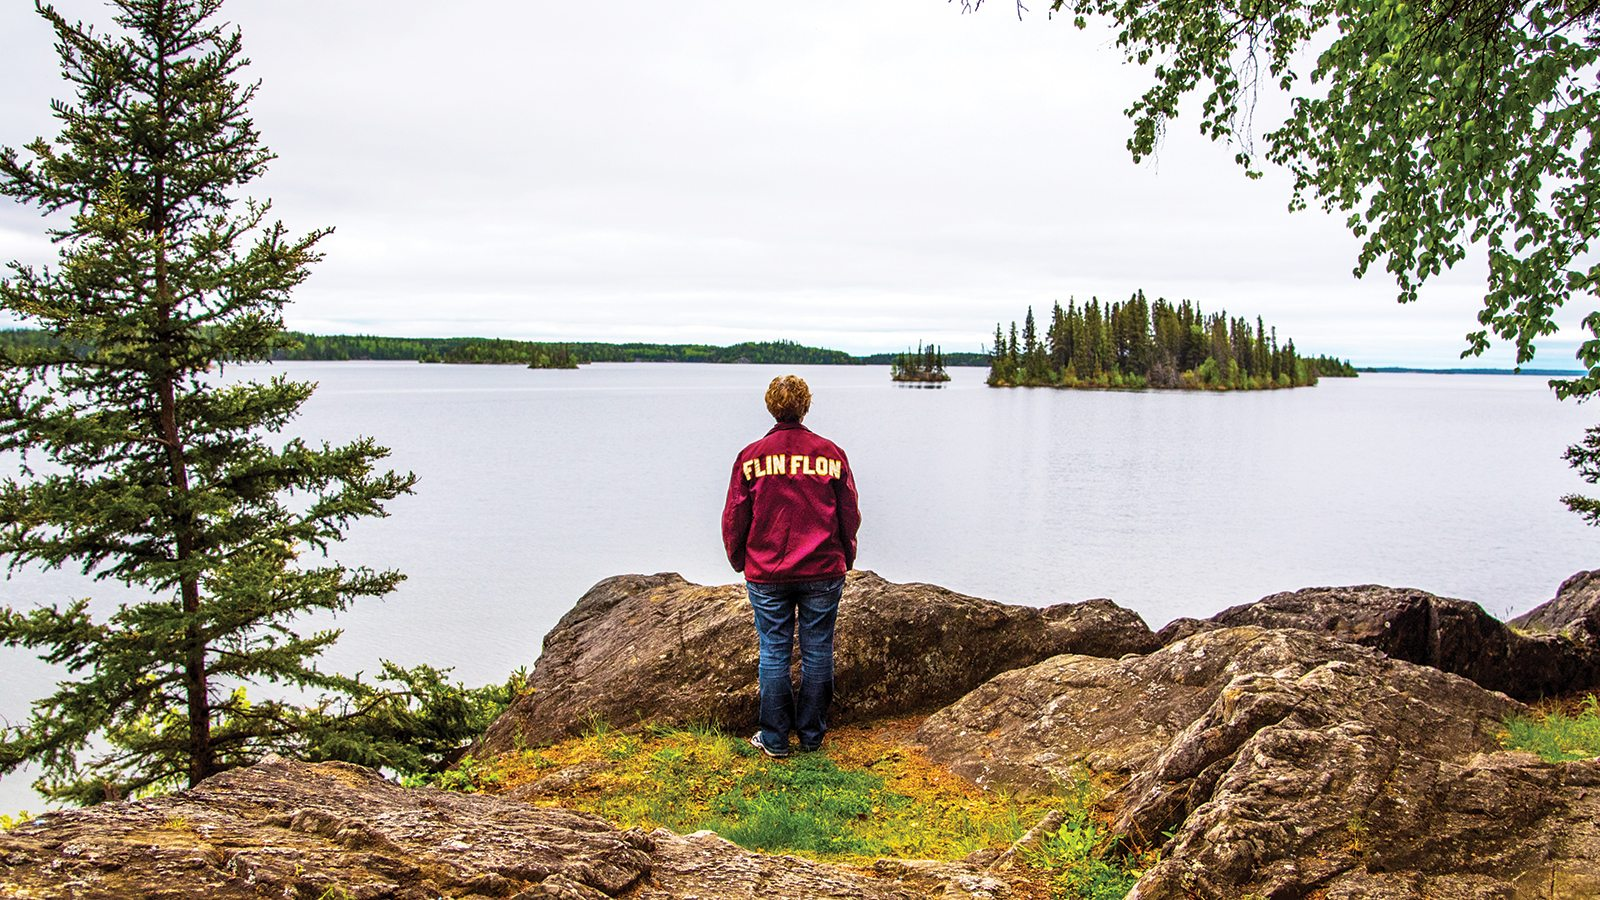 flin flon dating site Flin flon belt and kisseynew sm/nd isotopes and u-pb dating) manitoba growth, enterprise and trade, manitoba geological survey.